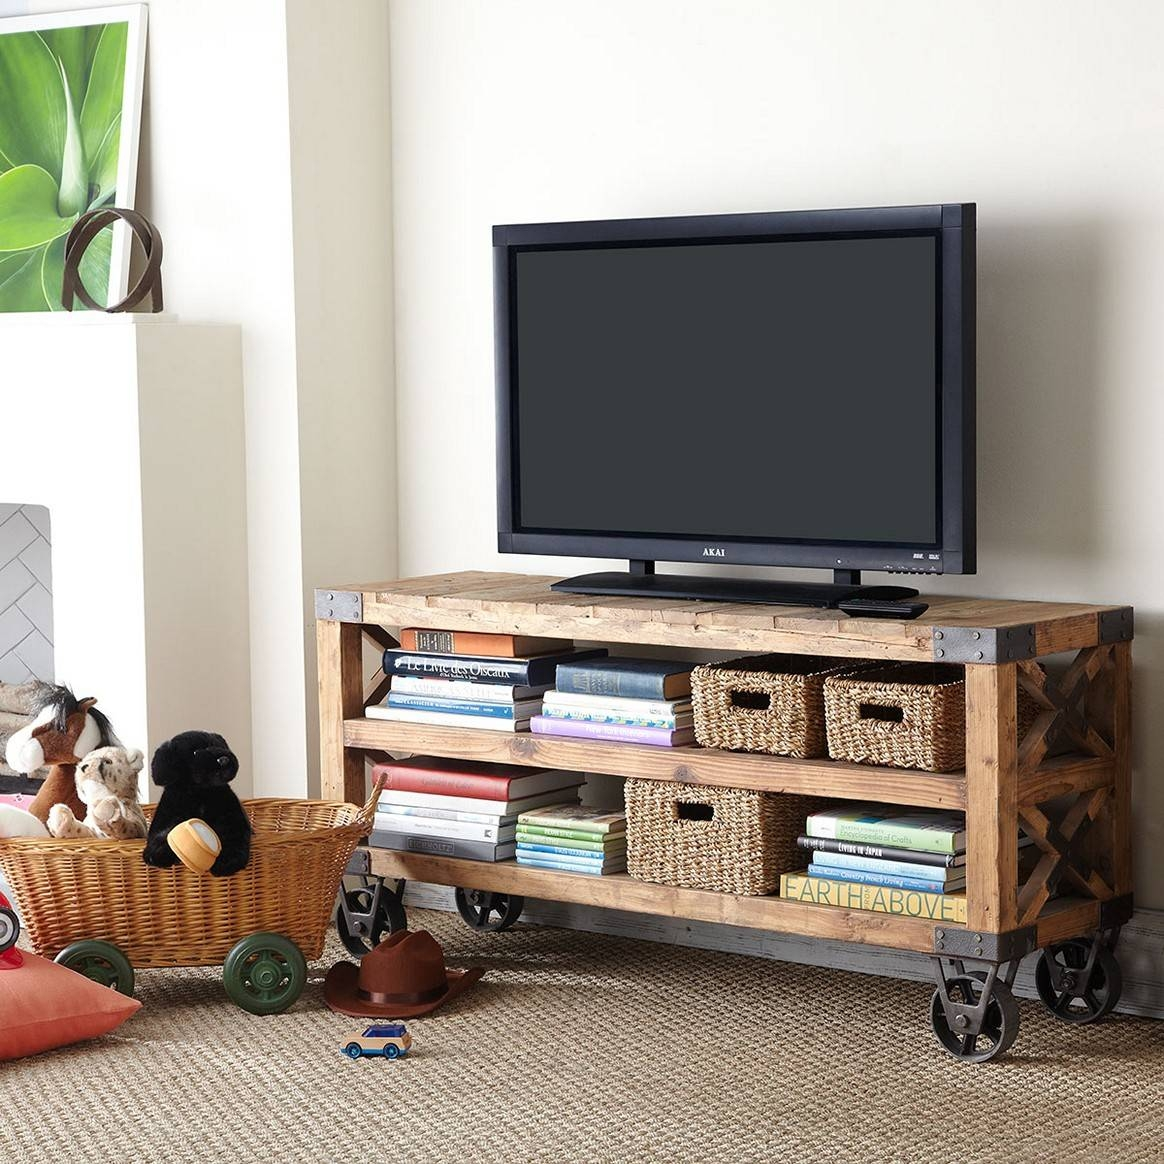 Tv Stands For Bedroom Dressers Ideas With Small Apartment Picture intended for Tv Stands With Baskets (Image 15 of 15)